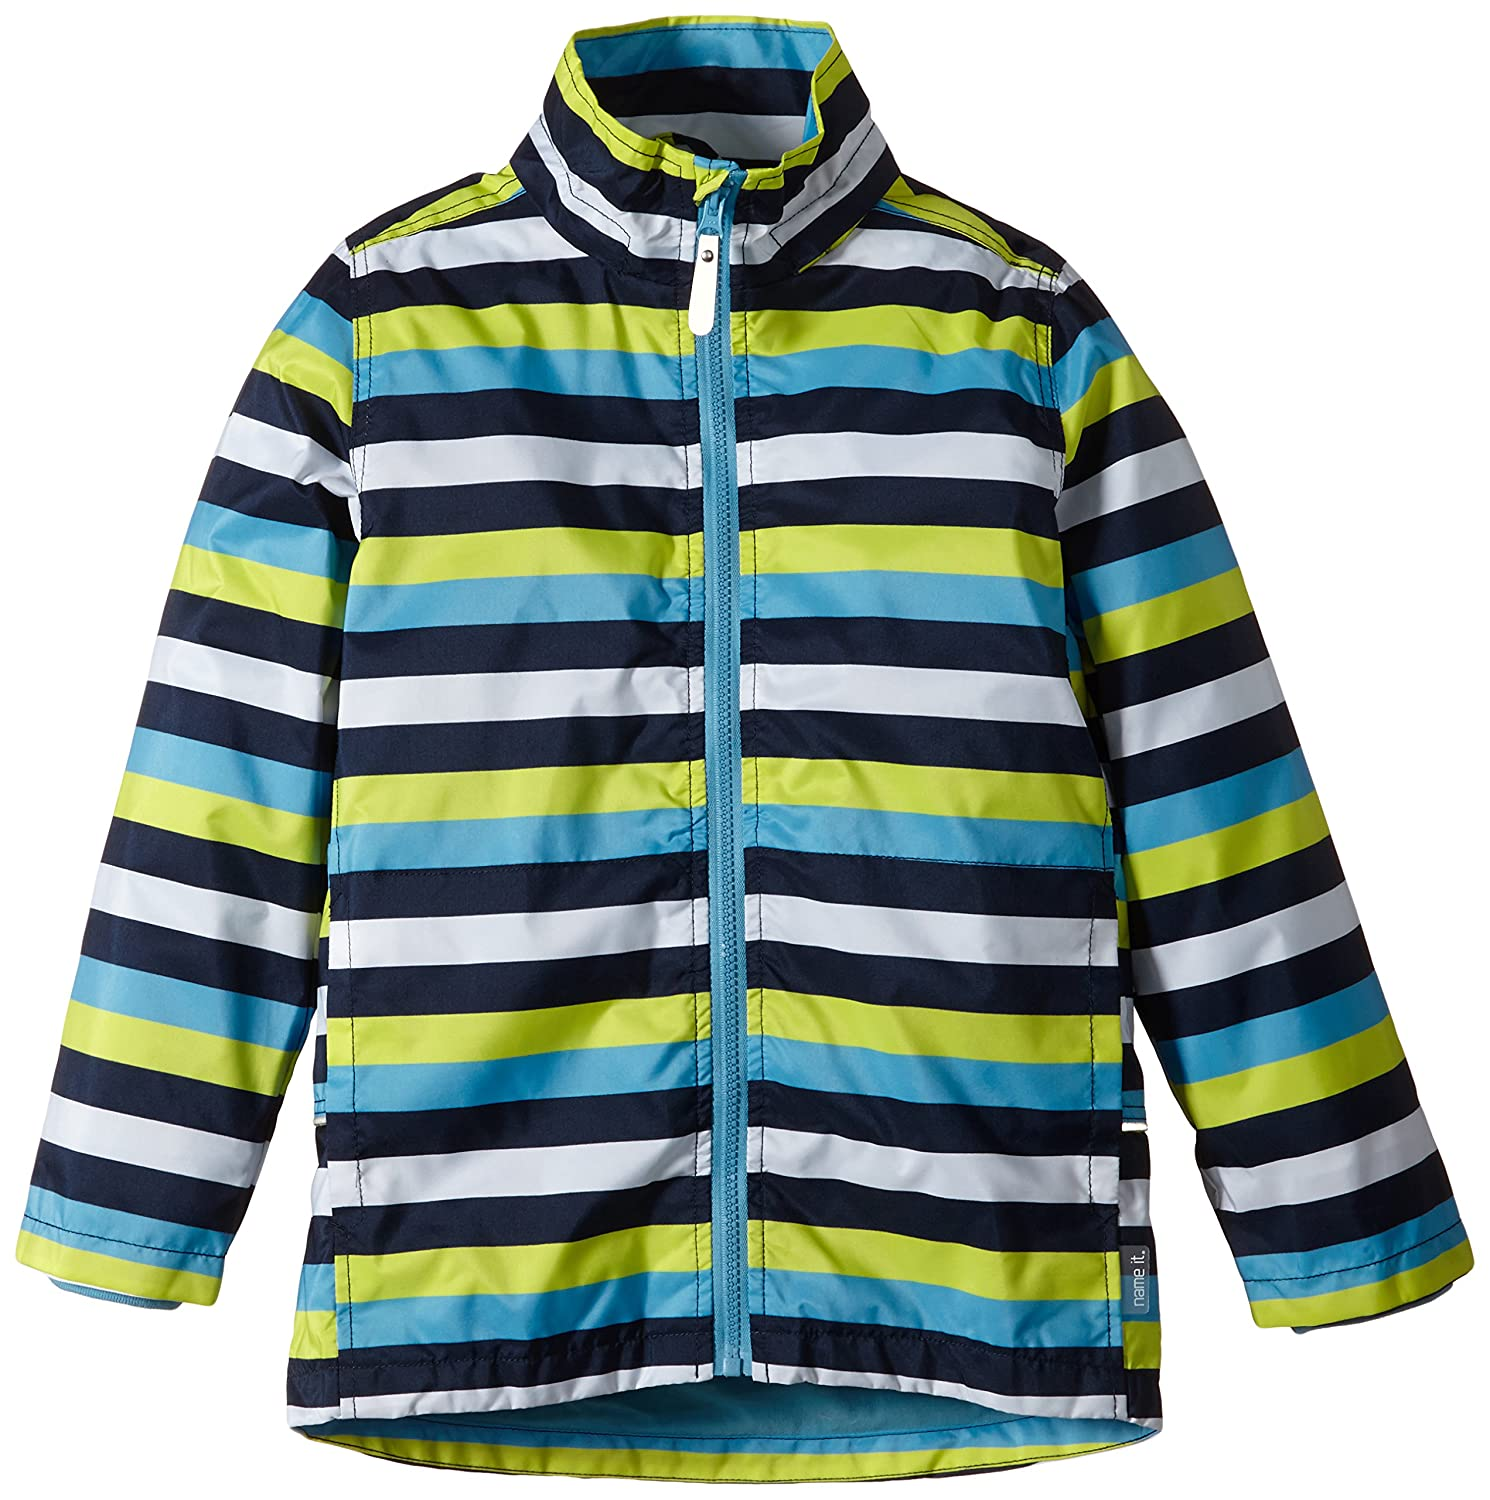 NAME IT Jungen Jacke Mellon Kids Jacket Stripe 115 günstig bestellen